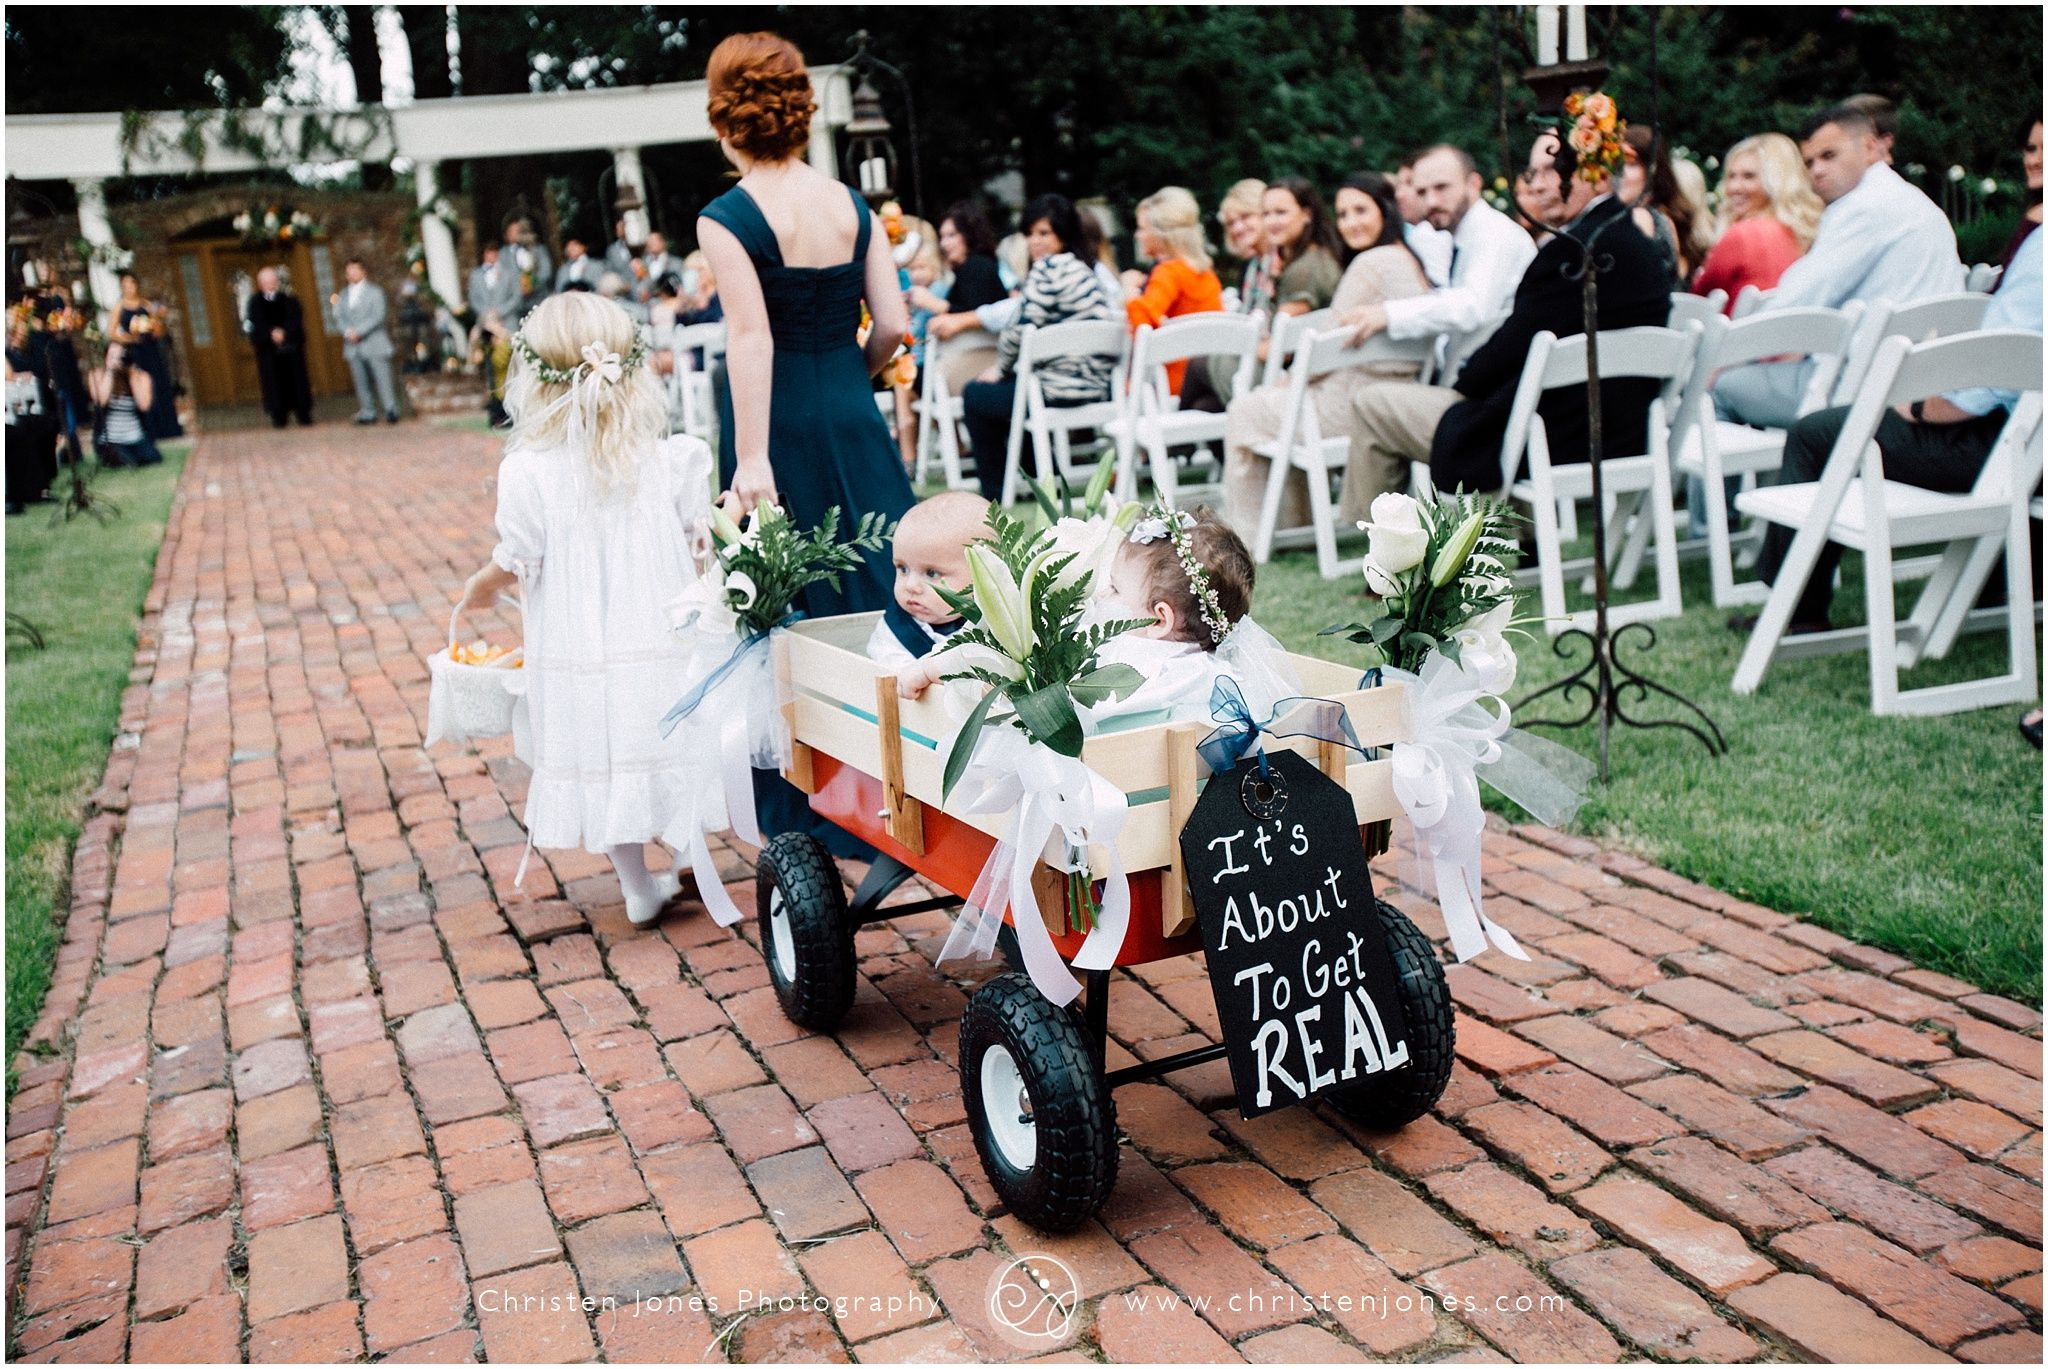 Kids Wedding Wagon Kids Walking Down The Aisle Flower Girl Ring Bearer Flower Girl Dres Wagon For Wedding Flower Girl Wagon Wedding With Kids